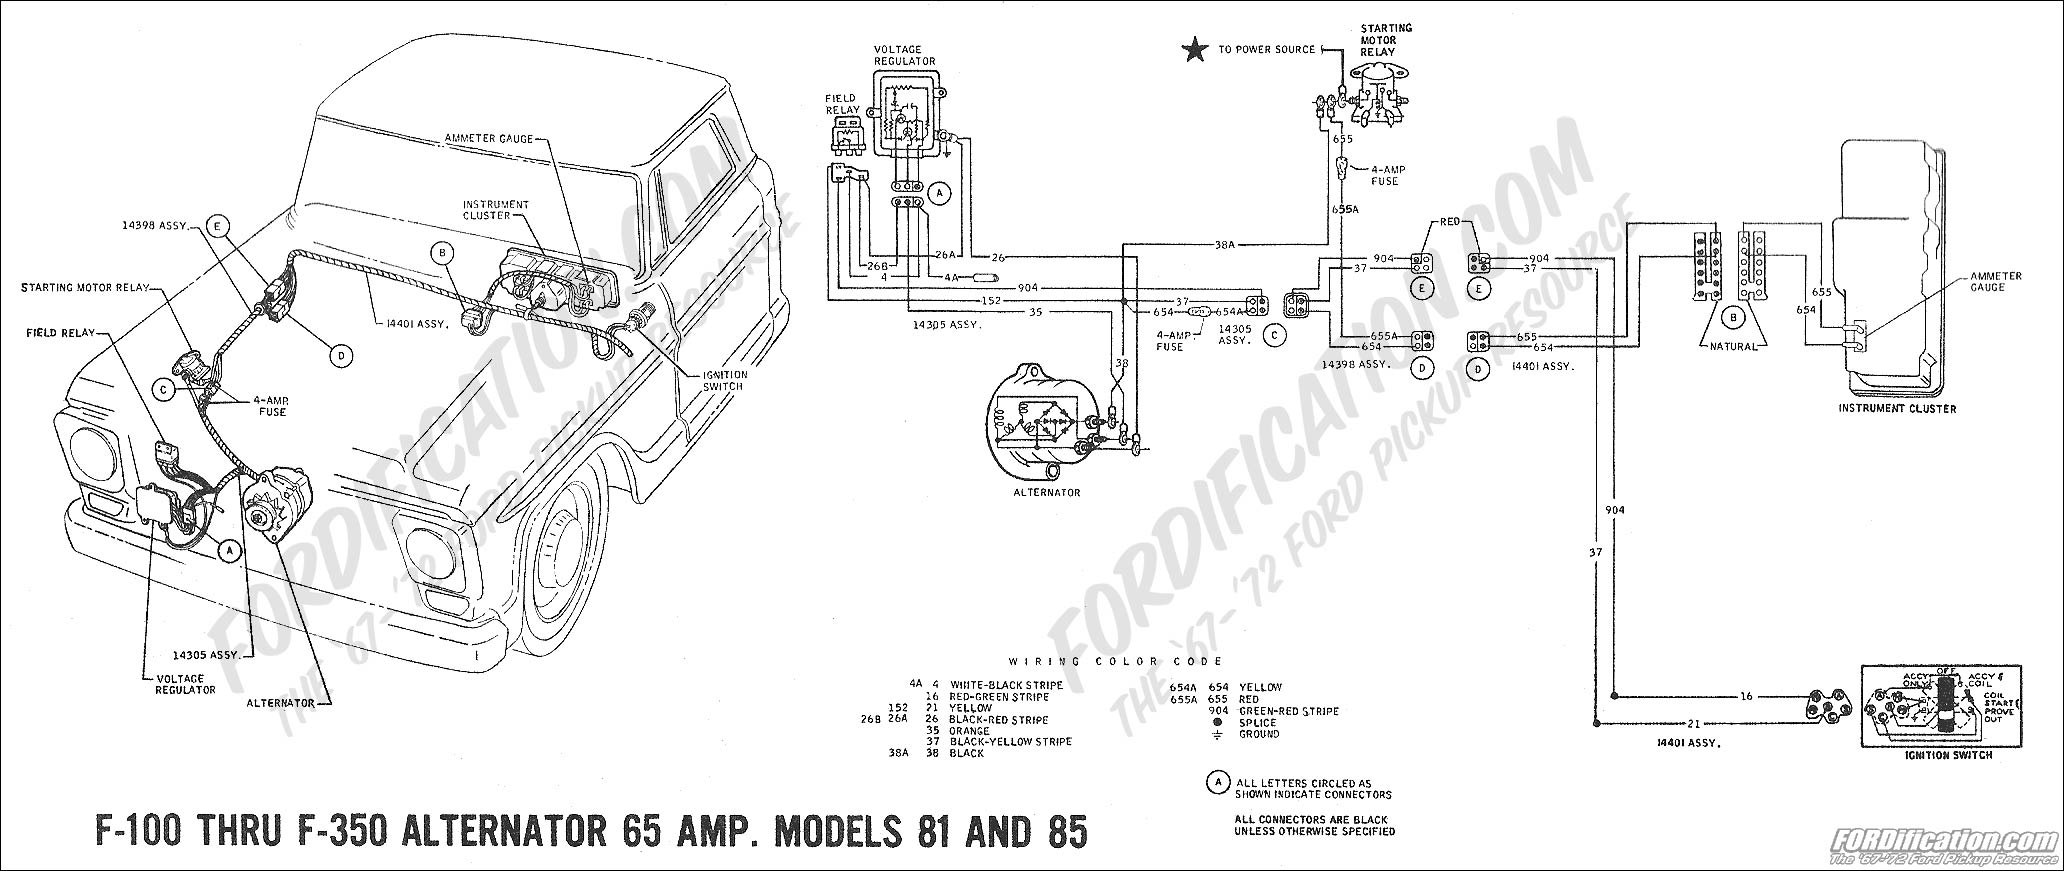 Wiring Diagram For 1980 Ford Alternator